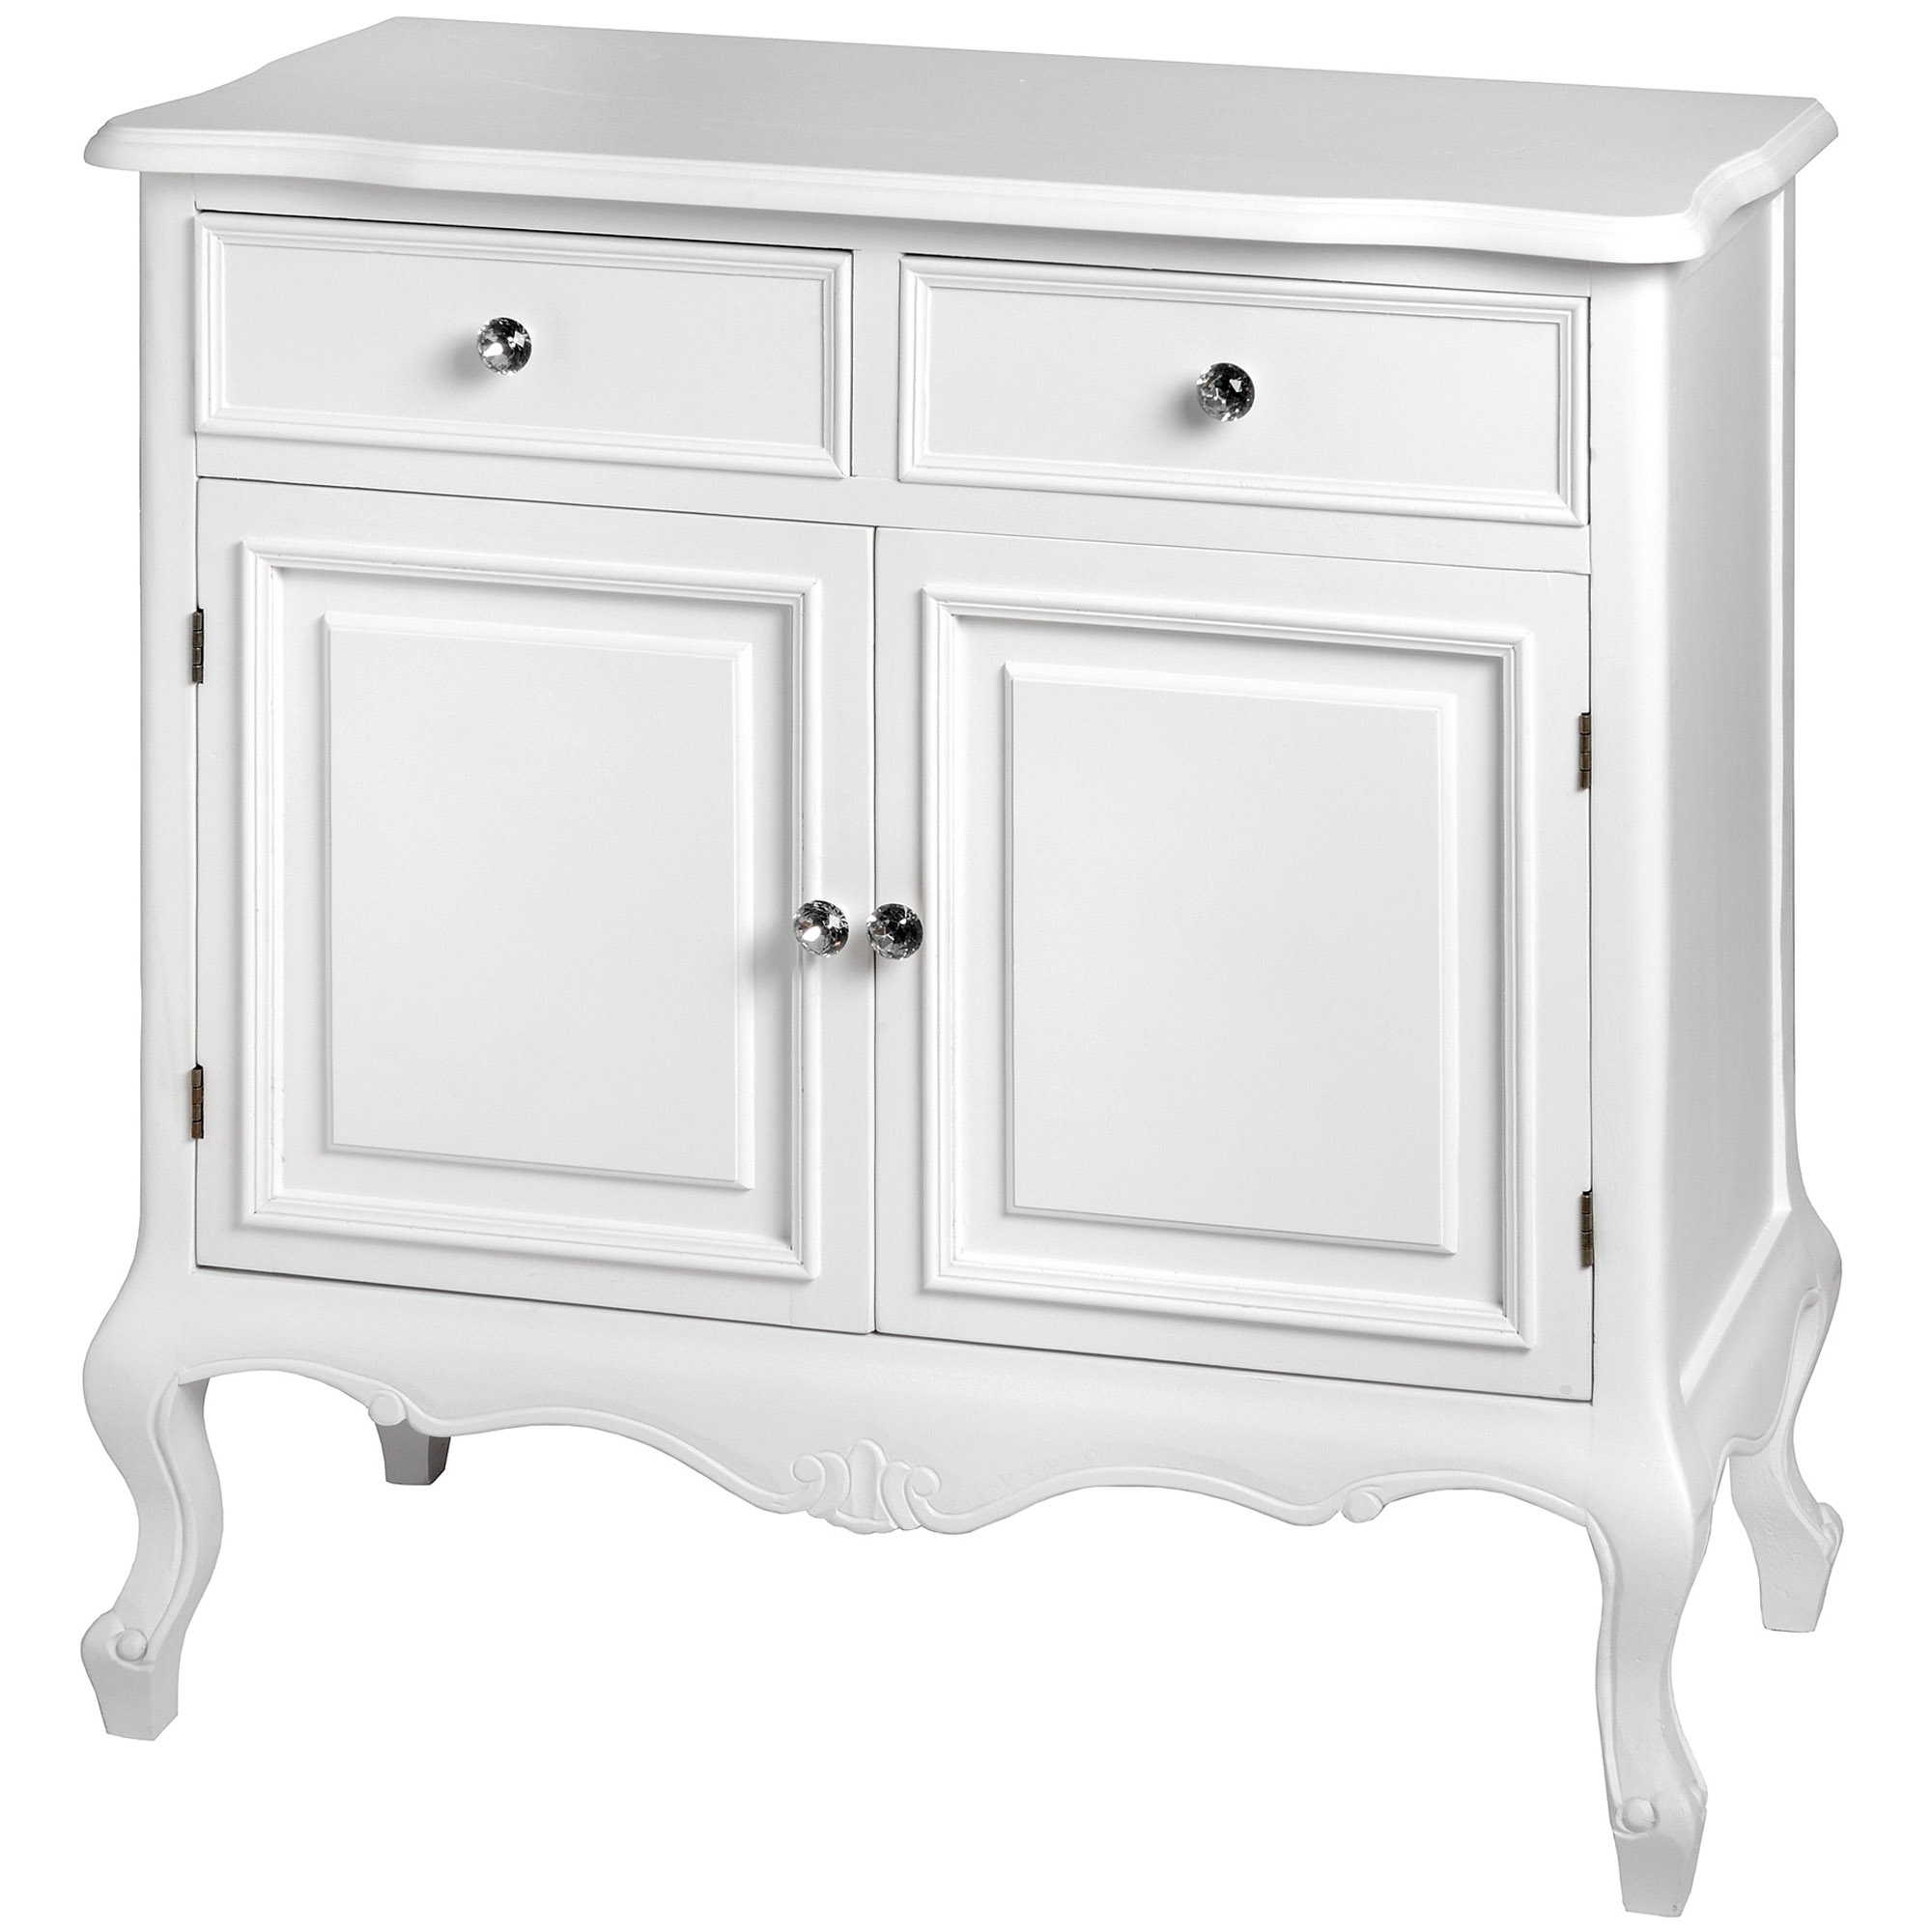 fleur white 2 drawer shabby chic sideboard homesdirect365. Black Bedroom Furniture Sets. Home Design Ideas